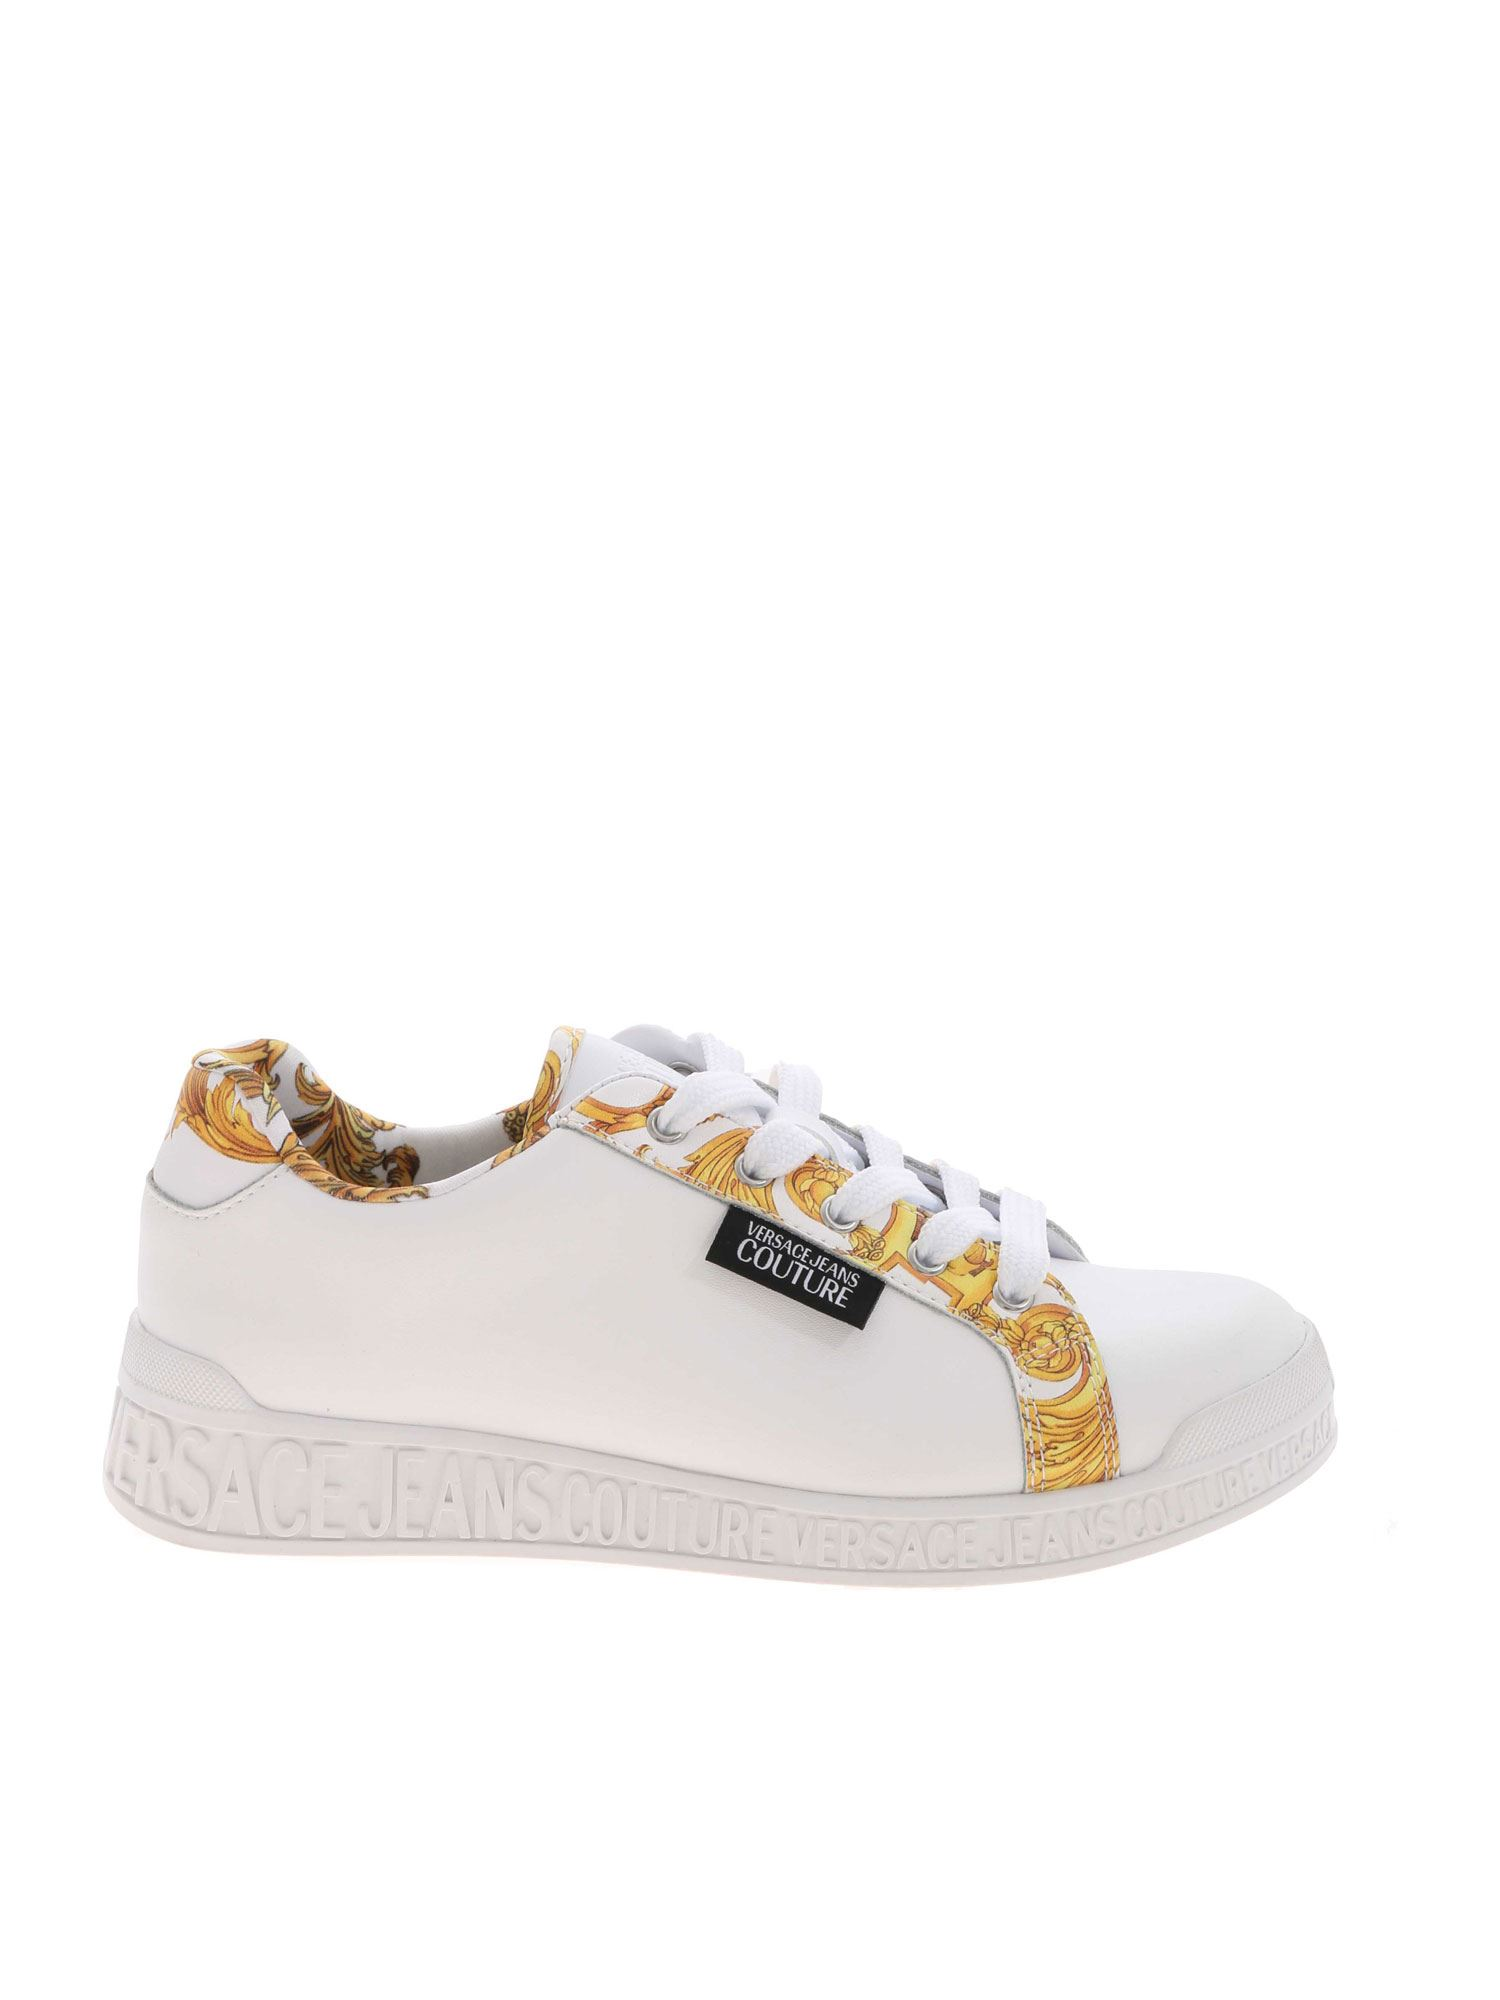 Versace Jeans Couture BAROQUE PRINT SNEAKERS IN WHITE